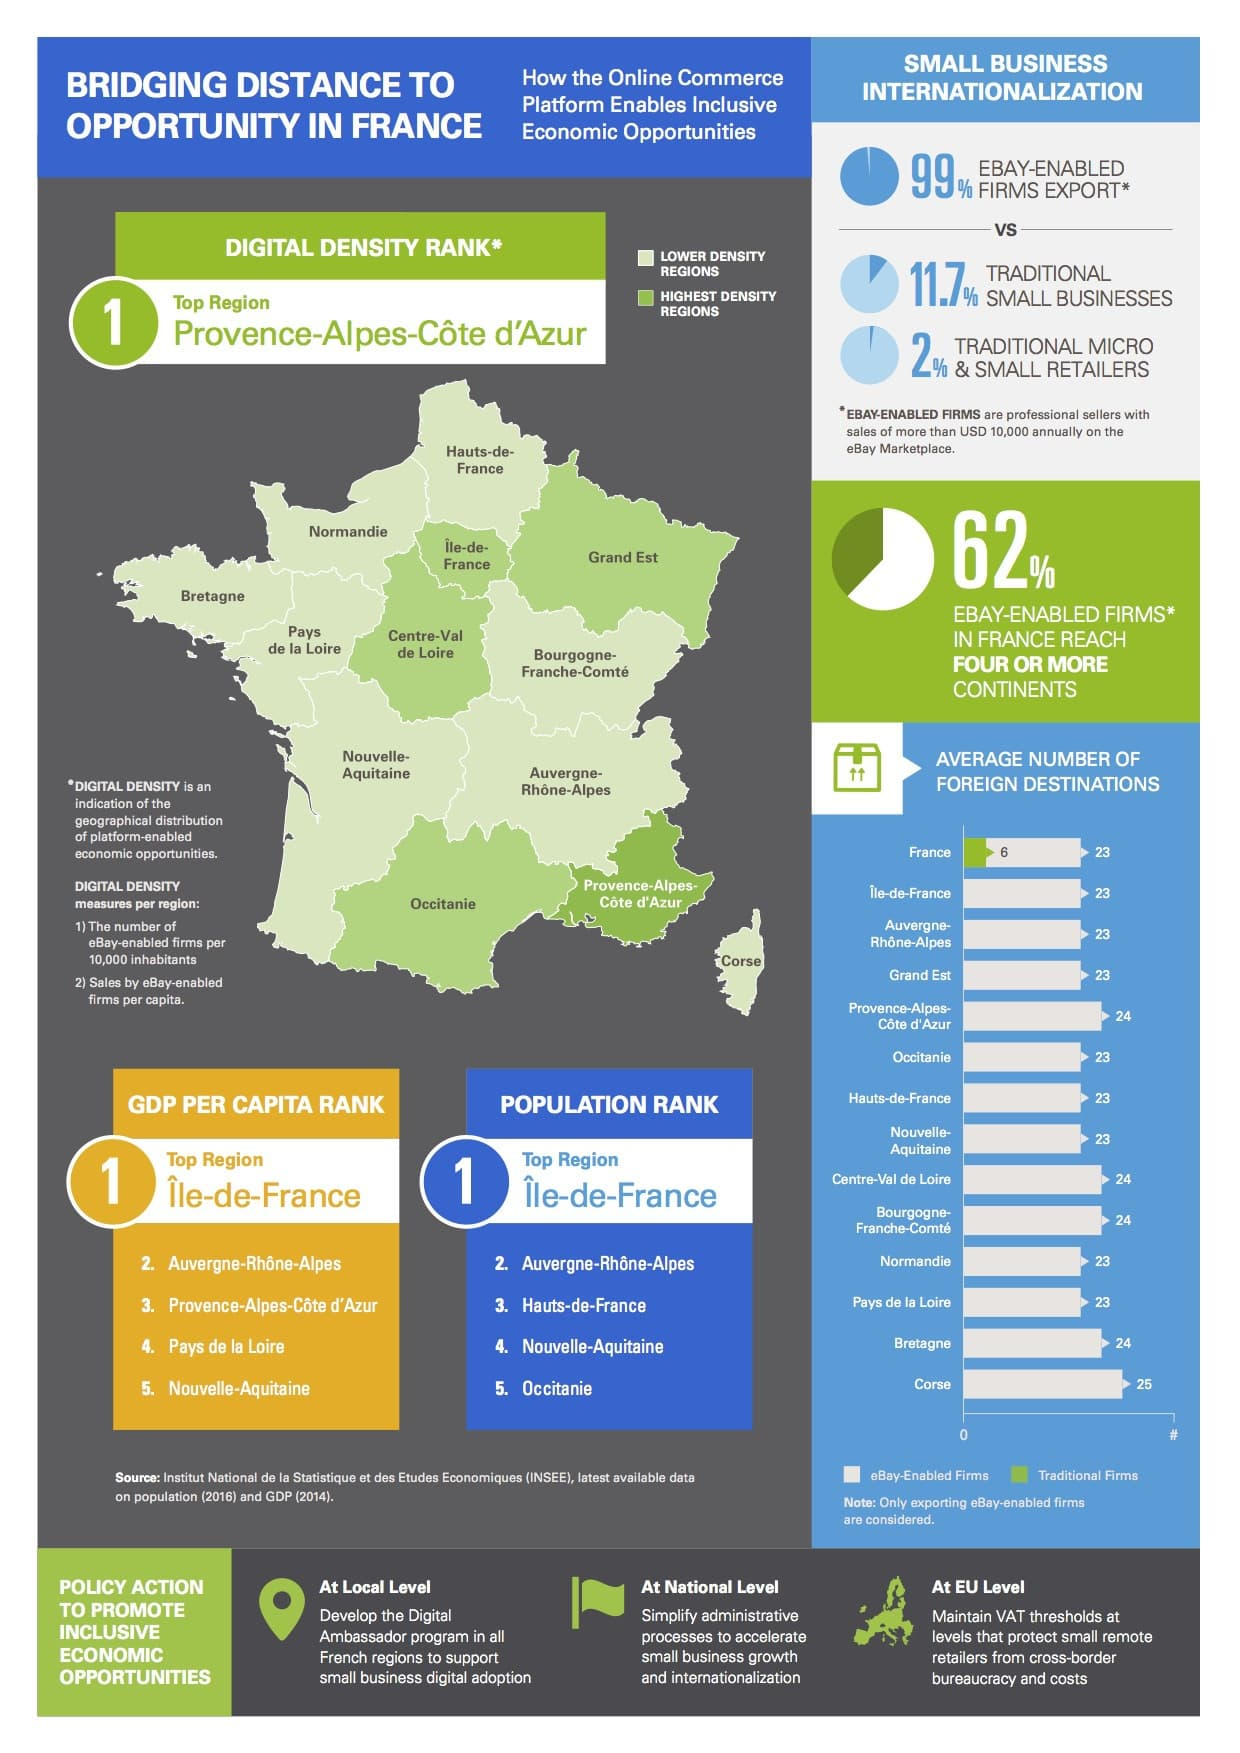 An infographic about how online commerce enables inclusive economic opportunities to France